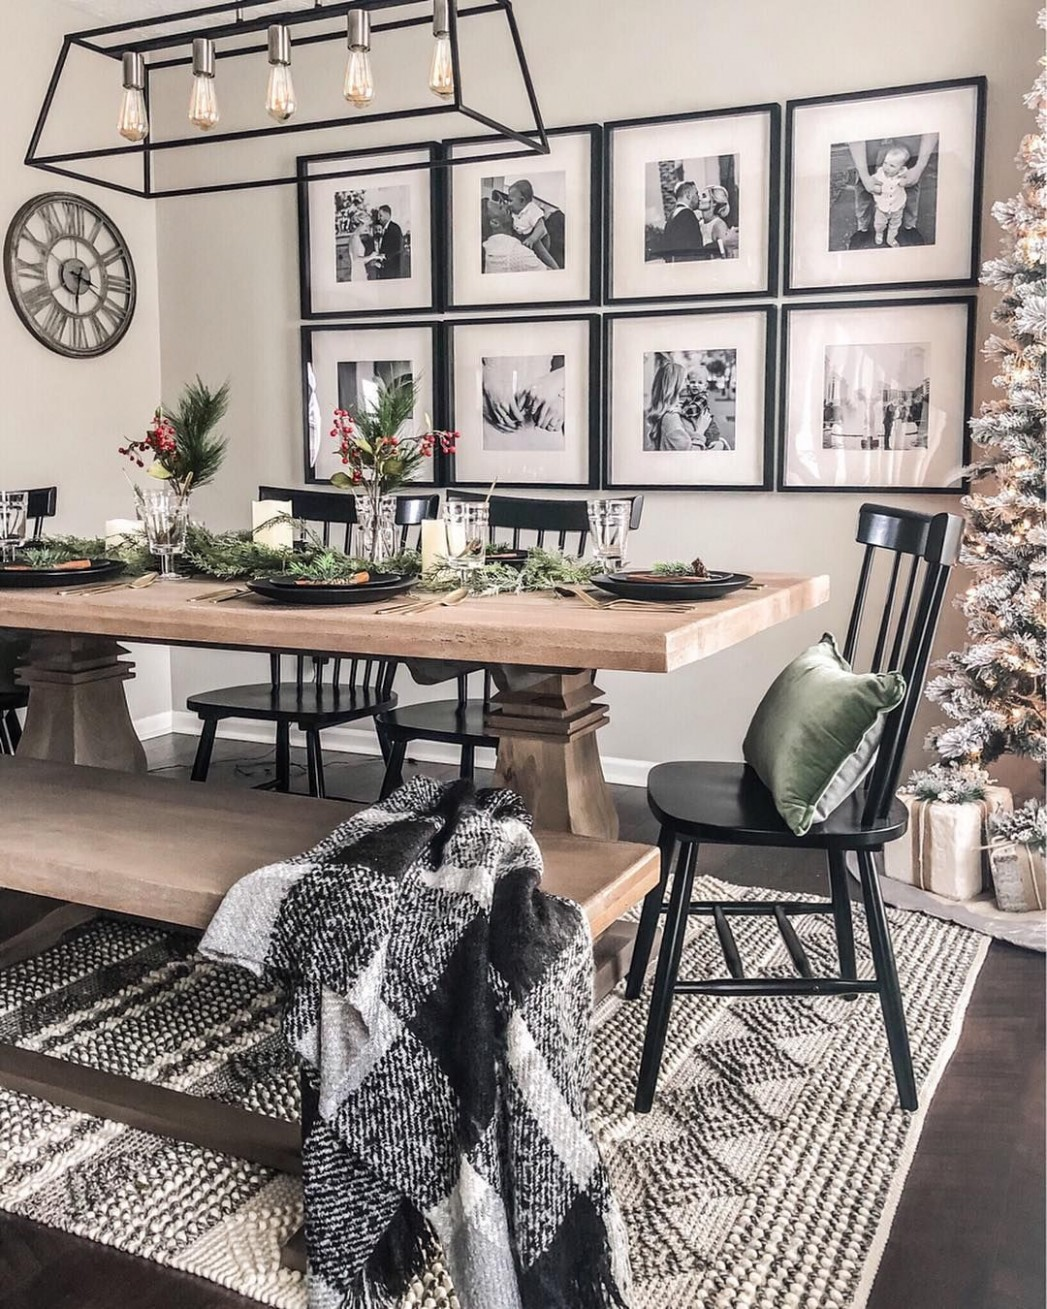 9+ Casual Dining Room Wall Decor Ideas with Art and Paint  - Wall Decor Ideas Dining Room